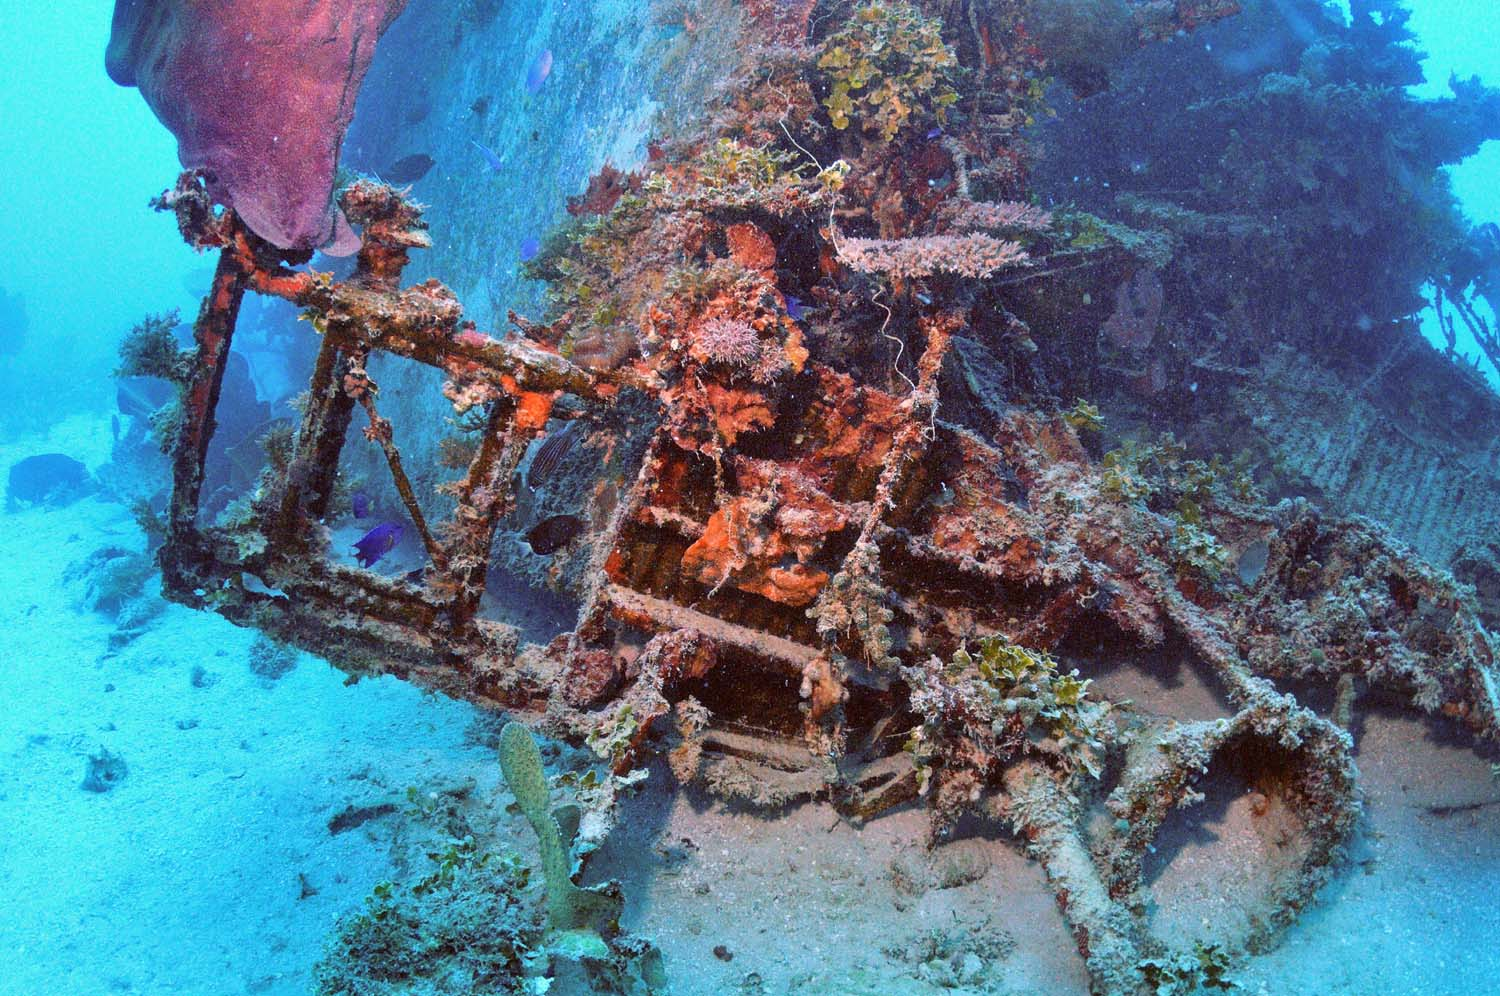 The use of flashlights offer the divers the chance to see the colours of marine life attached on the float plane wreck